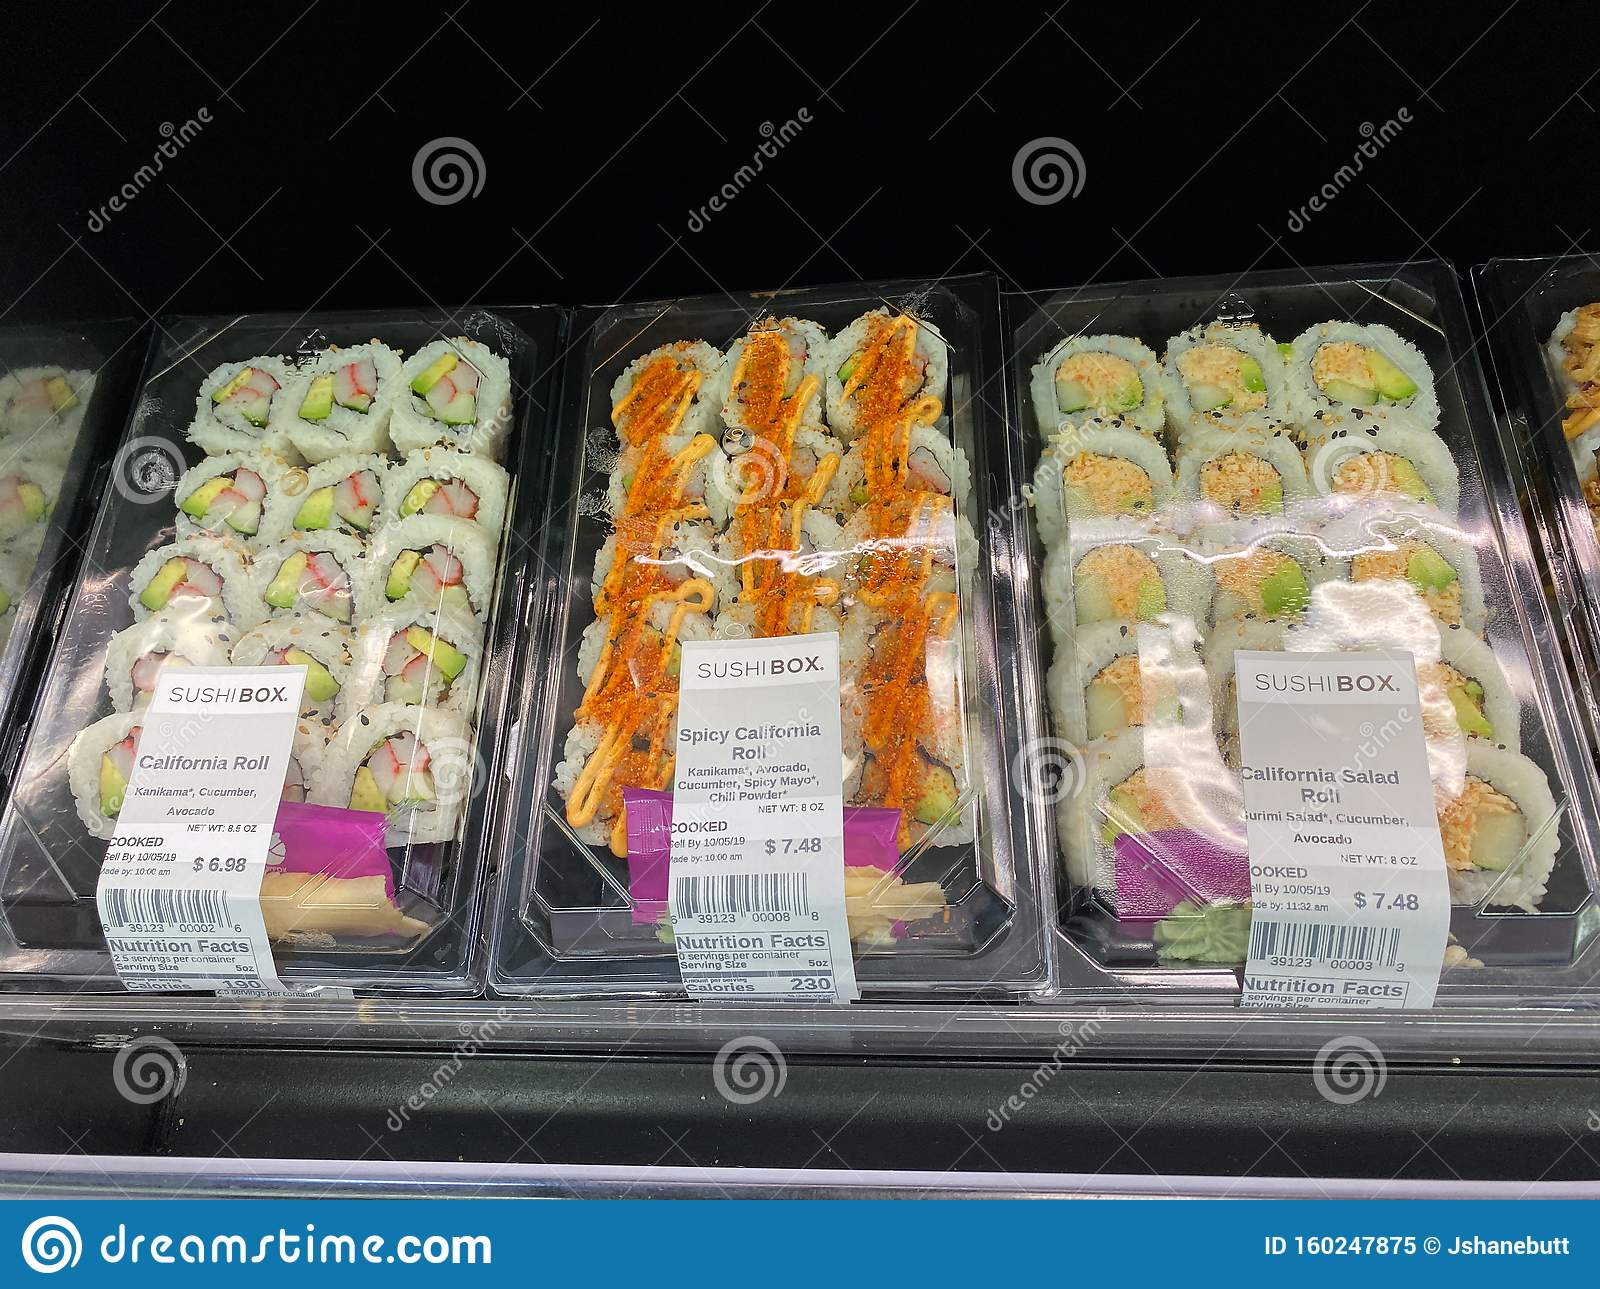 1 243 Sushi Store Photos Free Royalty Free Stock Photos From Dreamstime Calorieking provides nutritional food information for calorie counters and people trying to lose weight. https www dreamstime com fresh handmade sushi refridgerated aisle sams club grocery store ready to be purchased consumers orlando fl usa image160247875